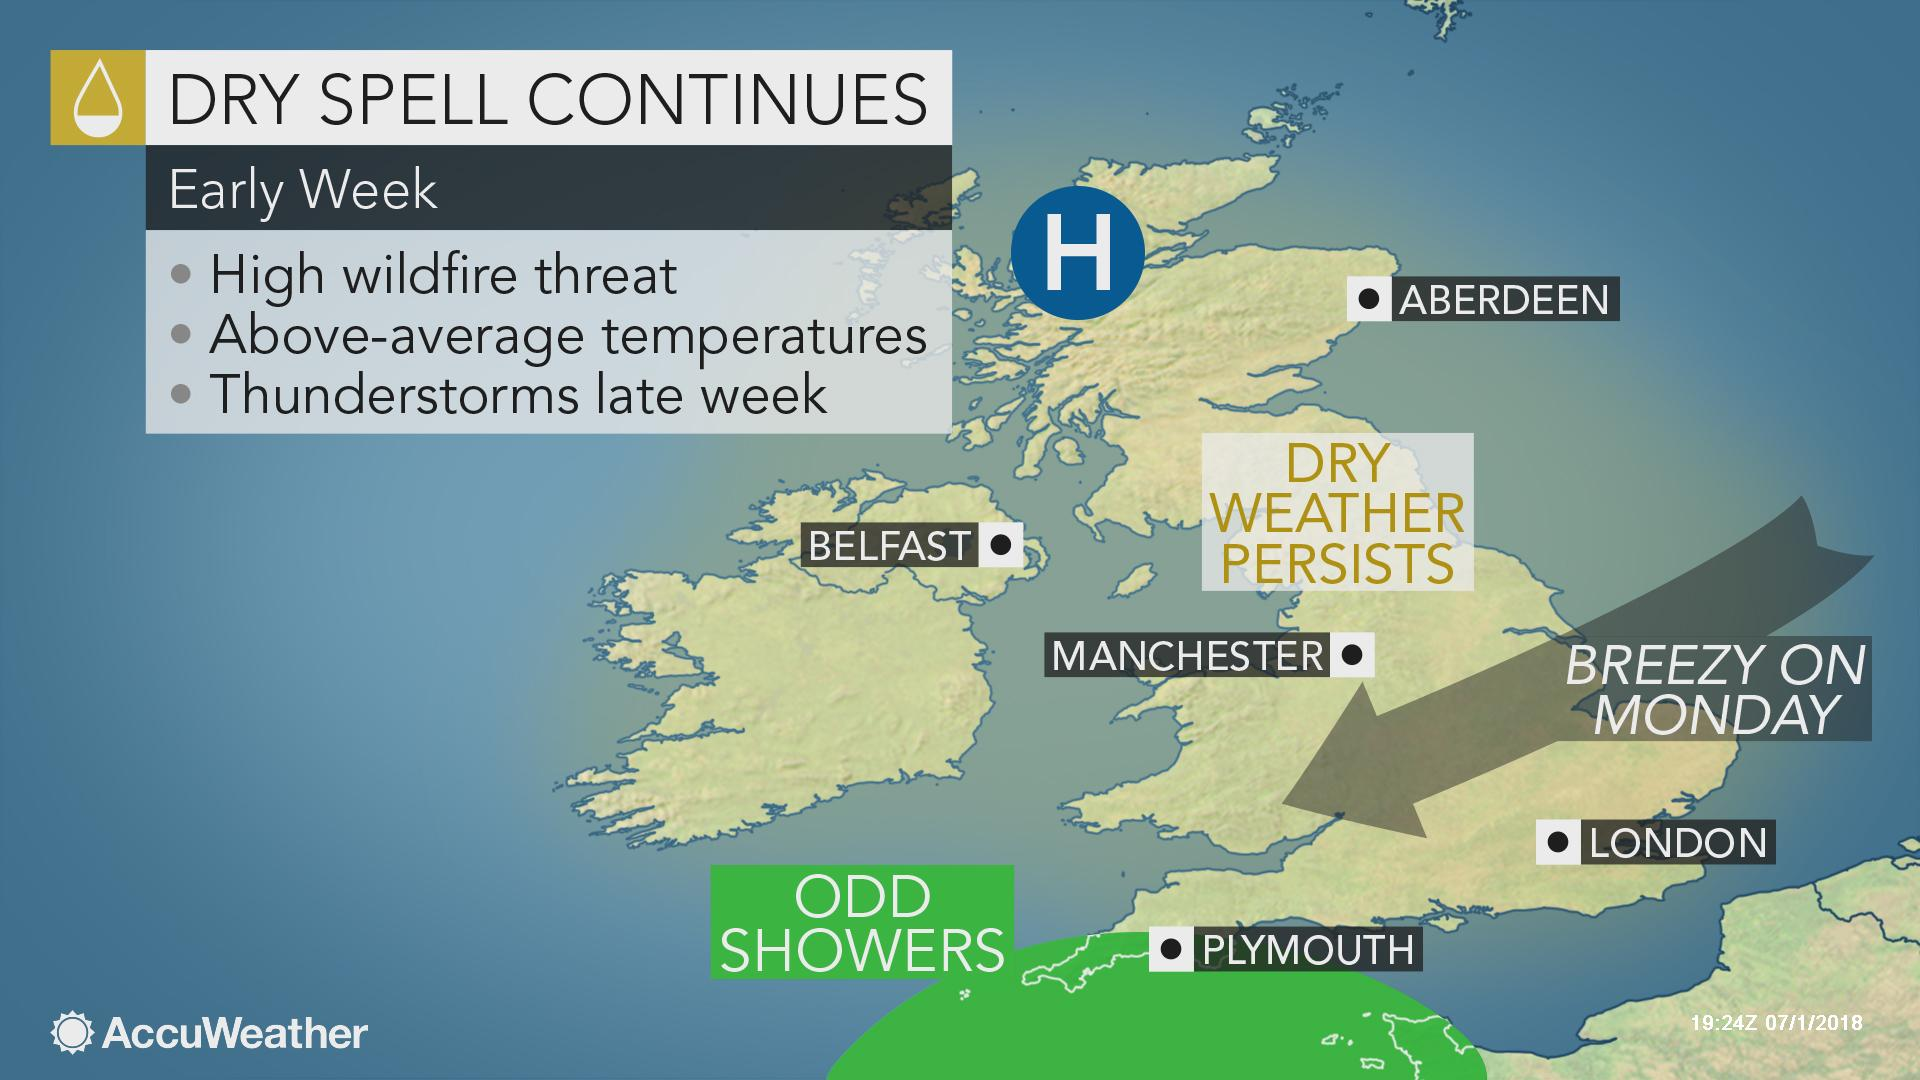 UK: Dry weather hinders fire-fighting efforts near Manchester